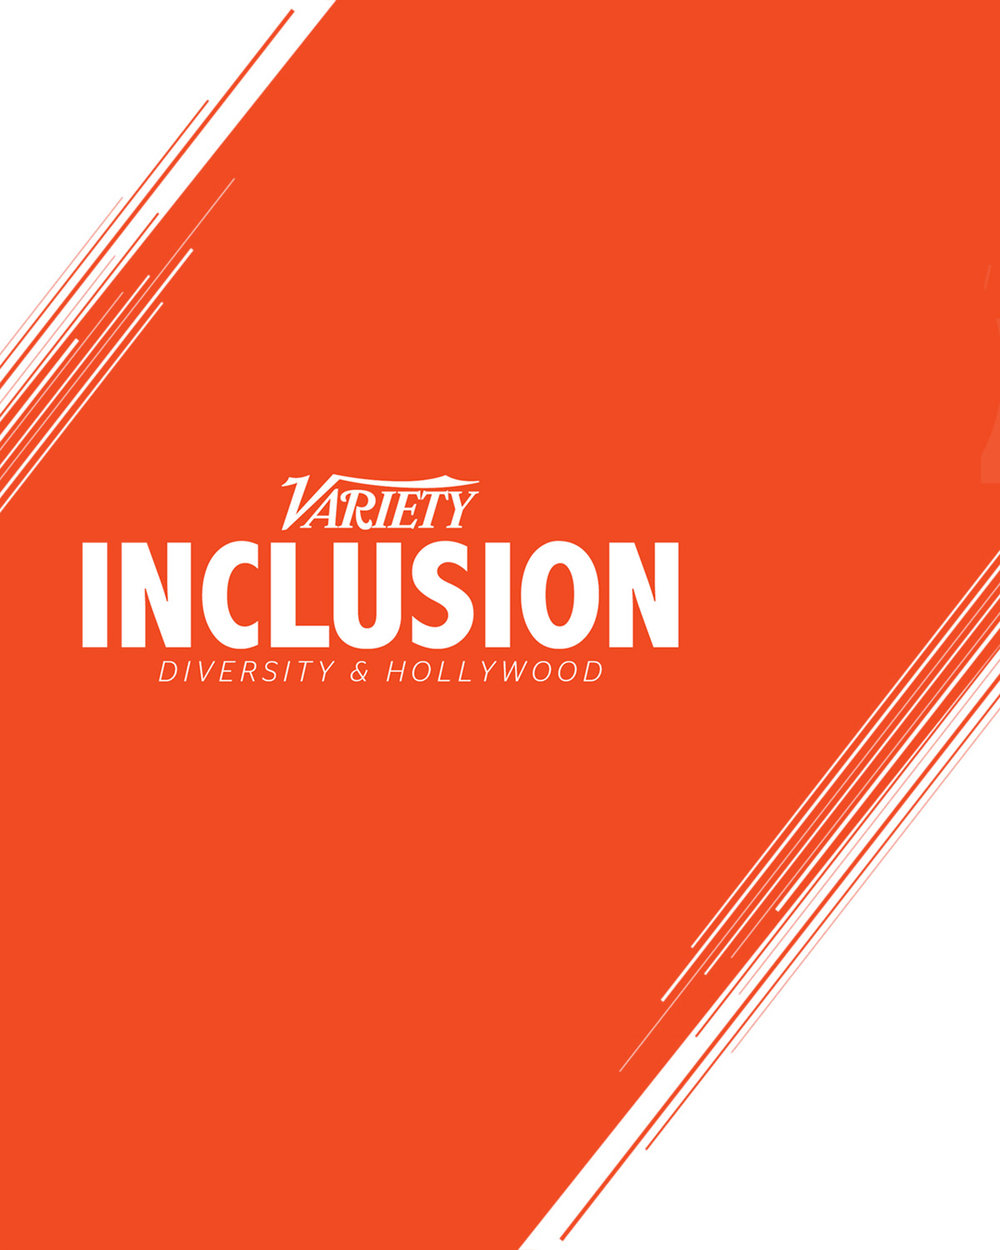 - Variety's Inclusion Impact Report recognized us as a leader bringing inclusion to the fore in the industry. To influence diversity, you must create authenticity so that others can better understand, accept, and respect us. We want to help tell a better story.